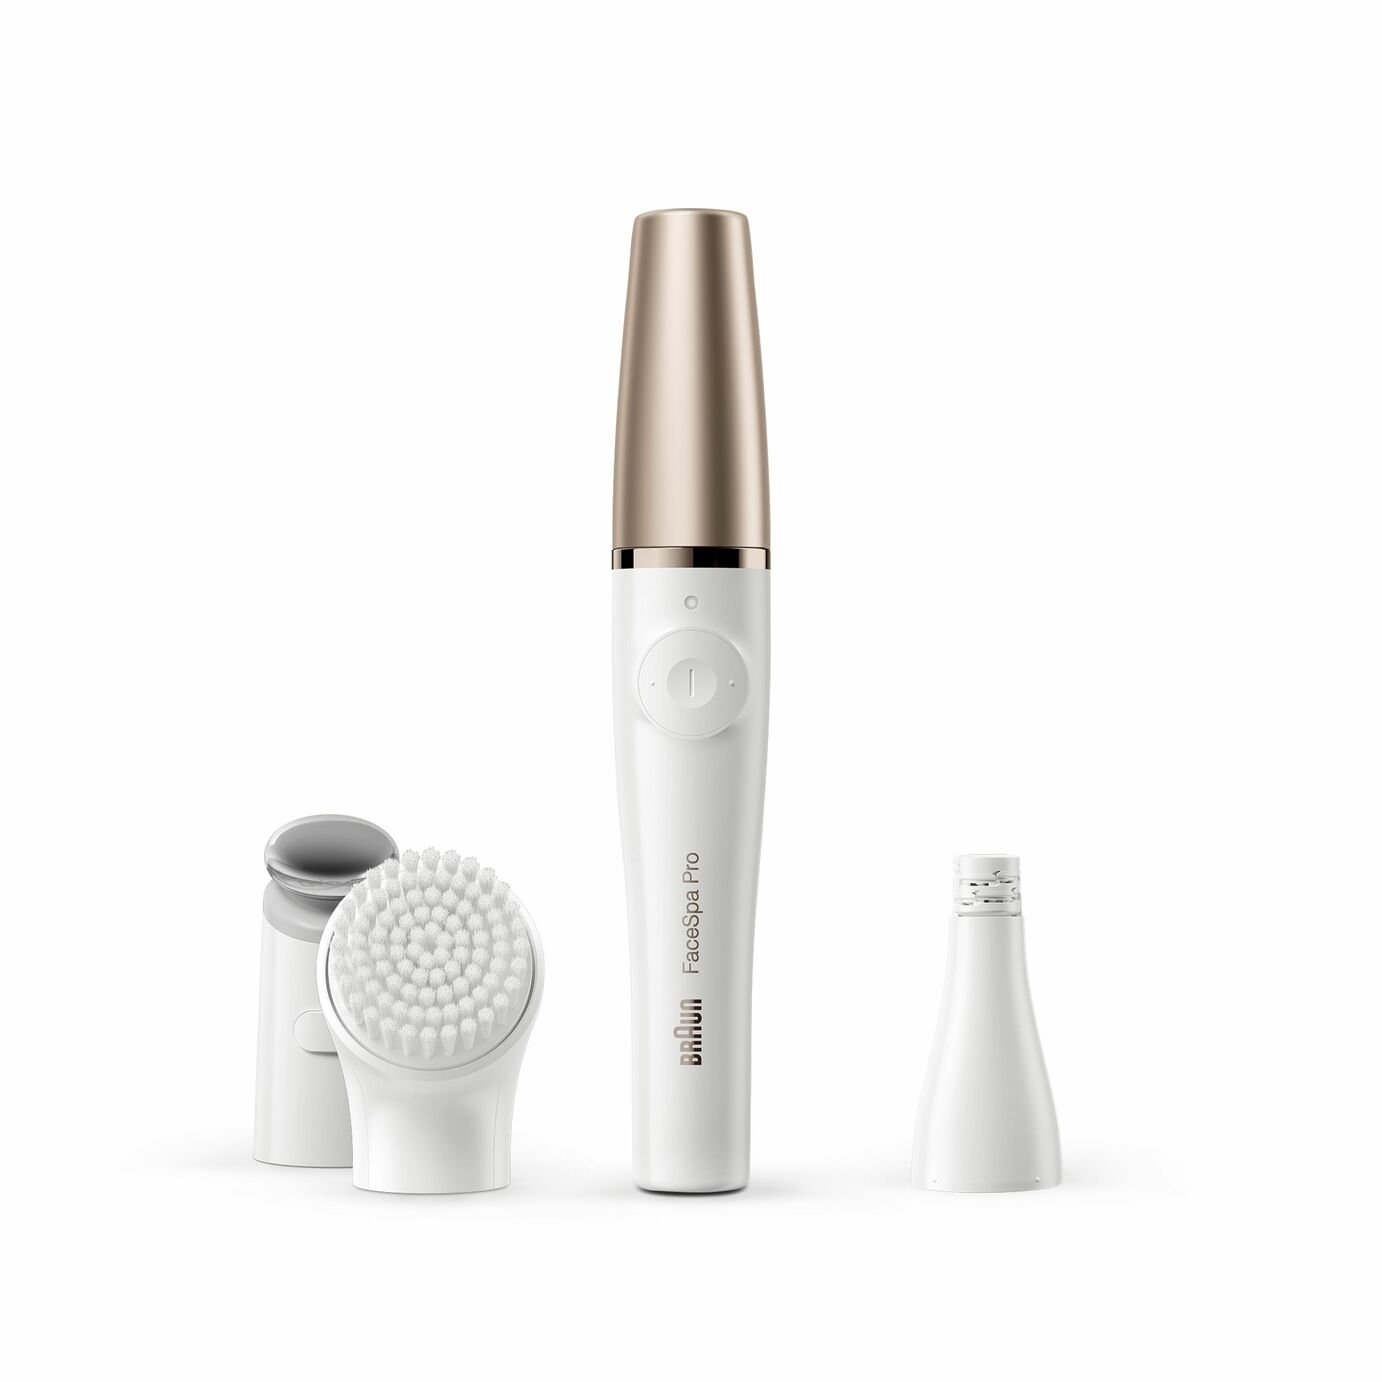 Braun FaceSpa 911 Cordless Facial Epilator and Cleanser